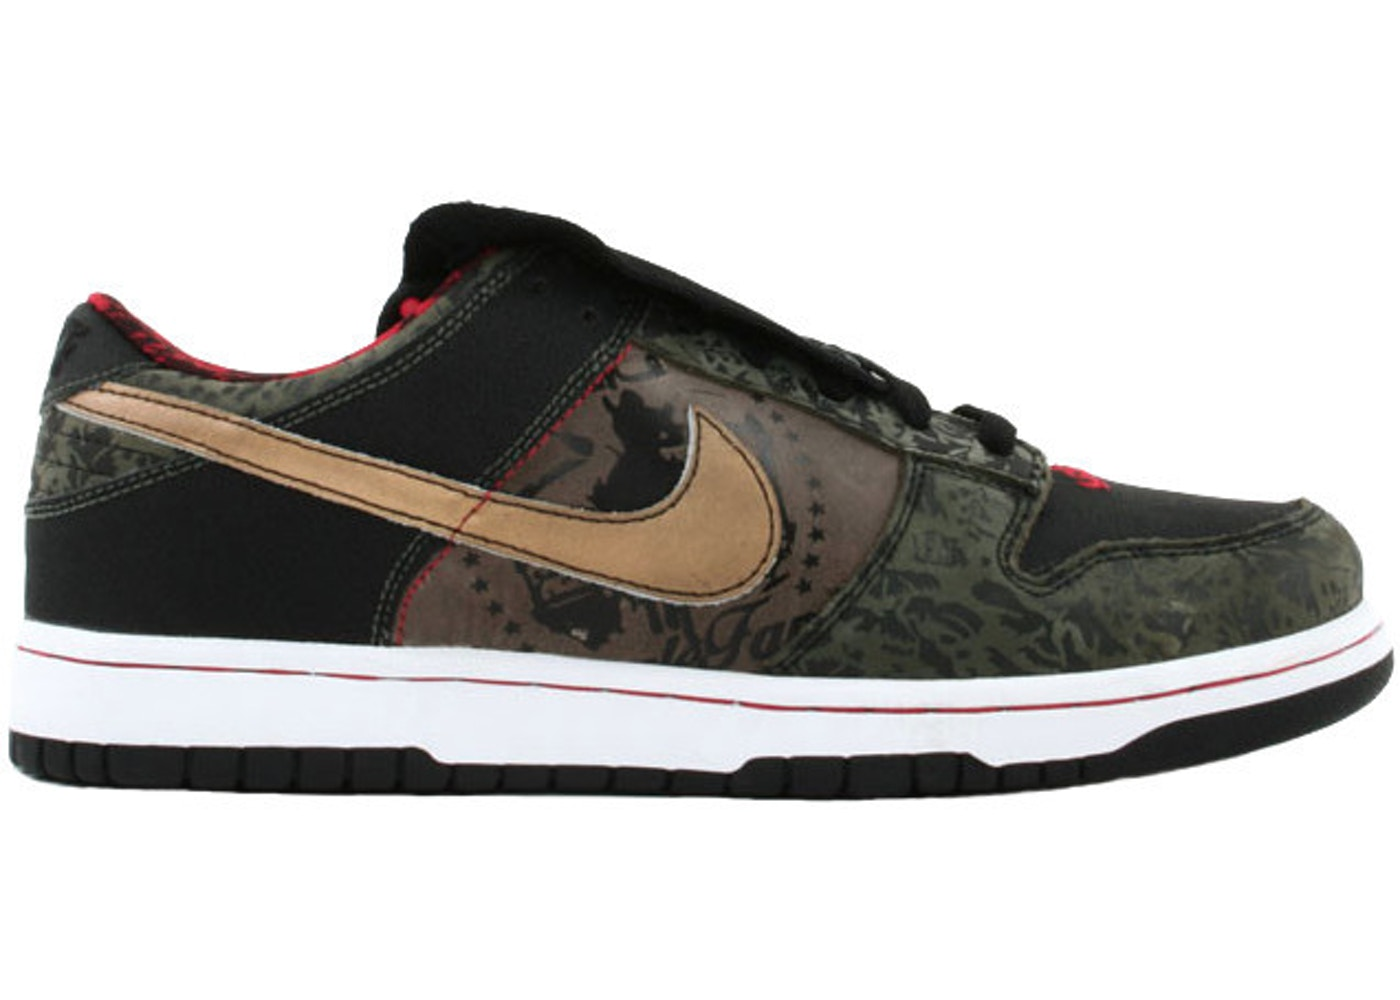 separation shoes c9c94 7107d Nike Dunk SB Low SBTG